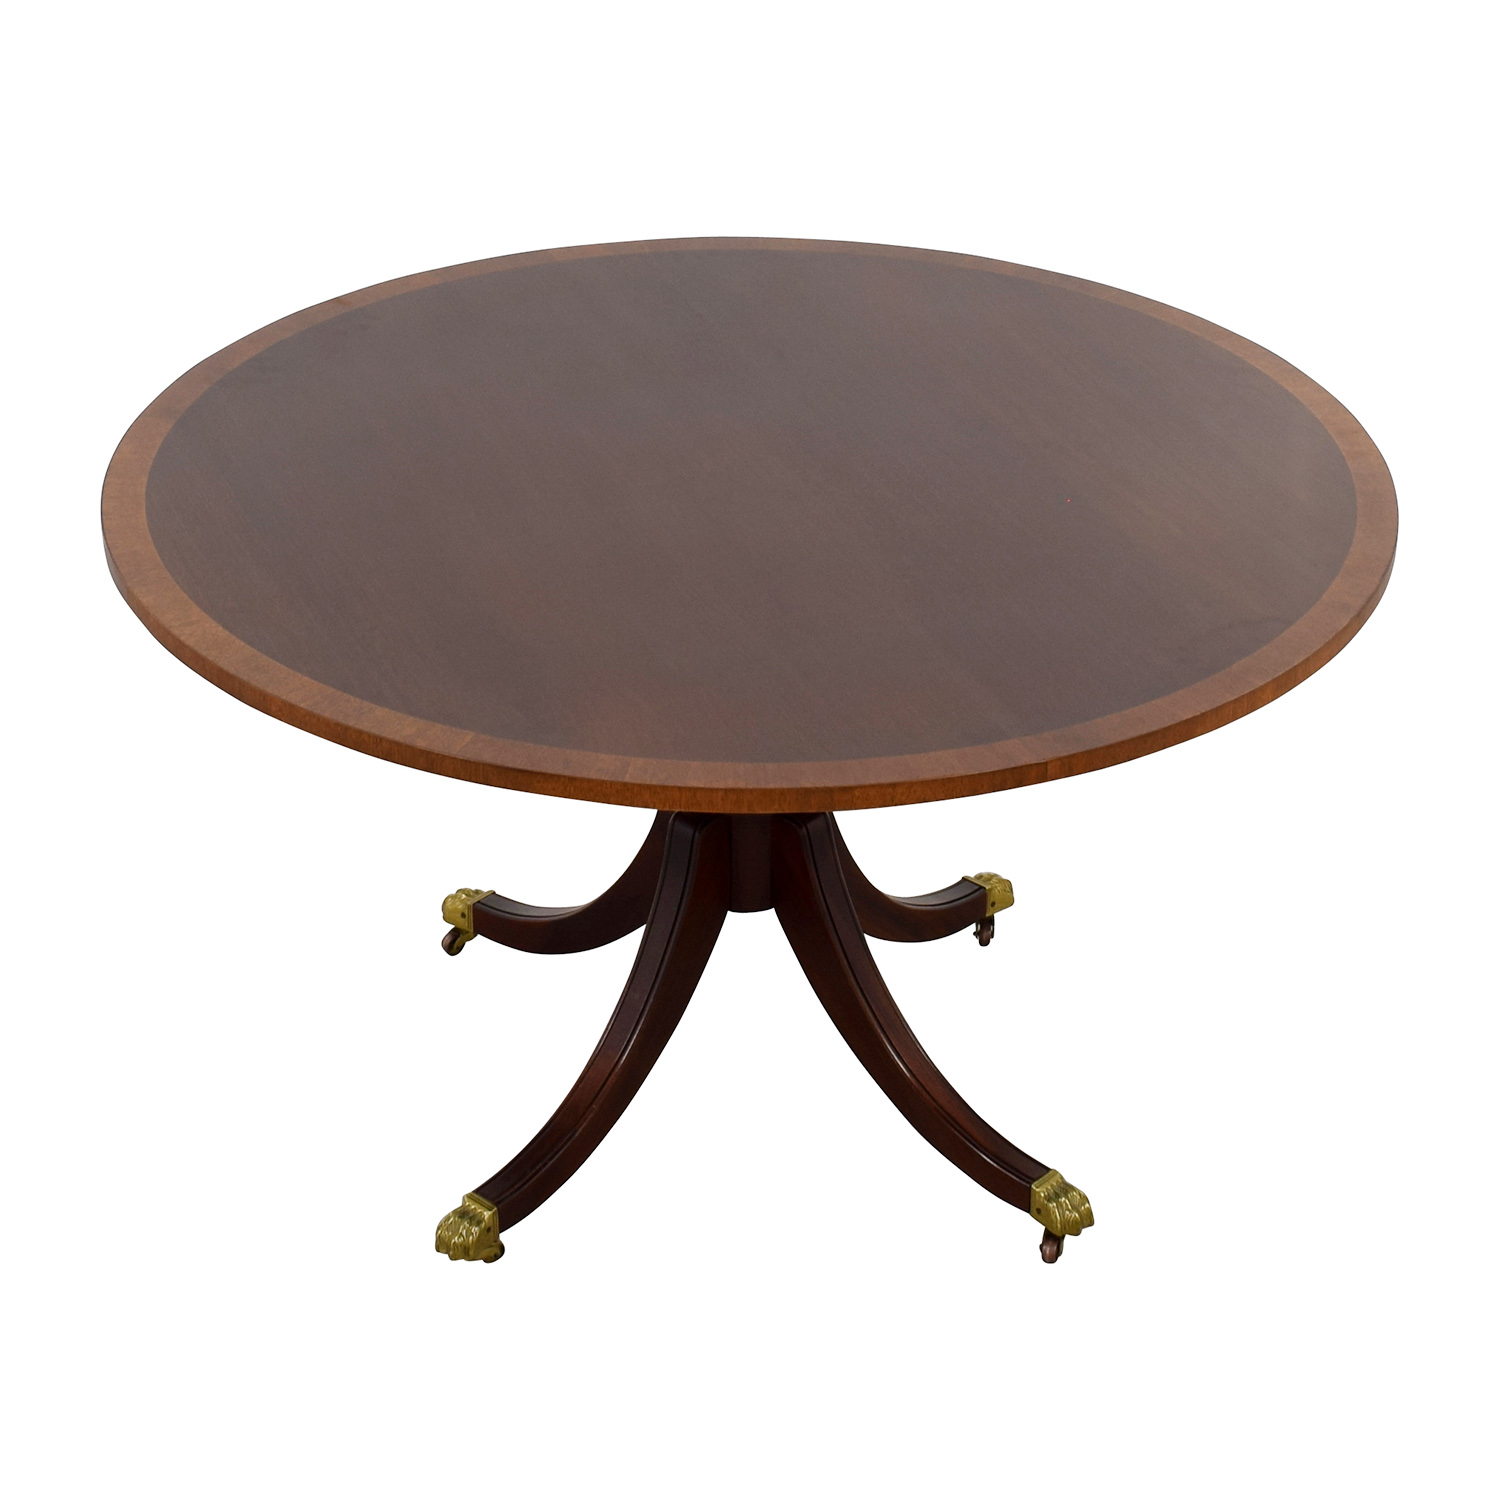 Mahogany Round Pedestal Table on Castors / Dinner Tables